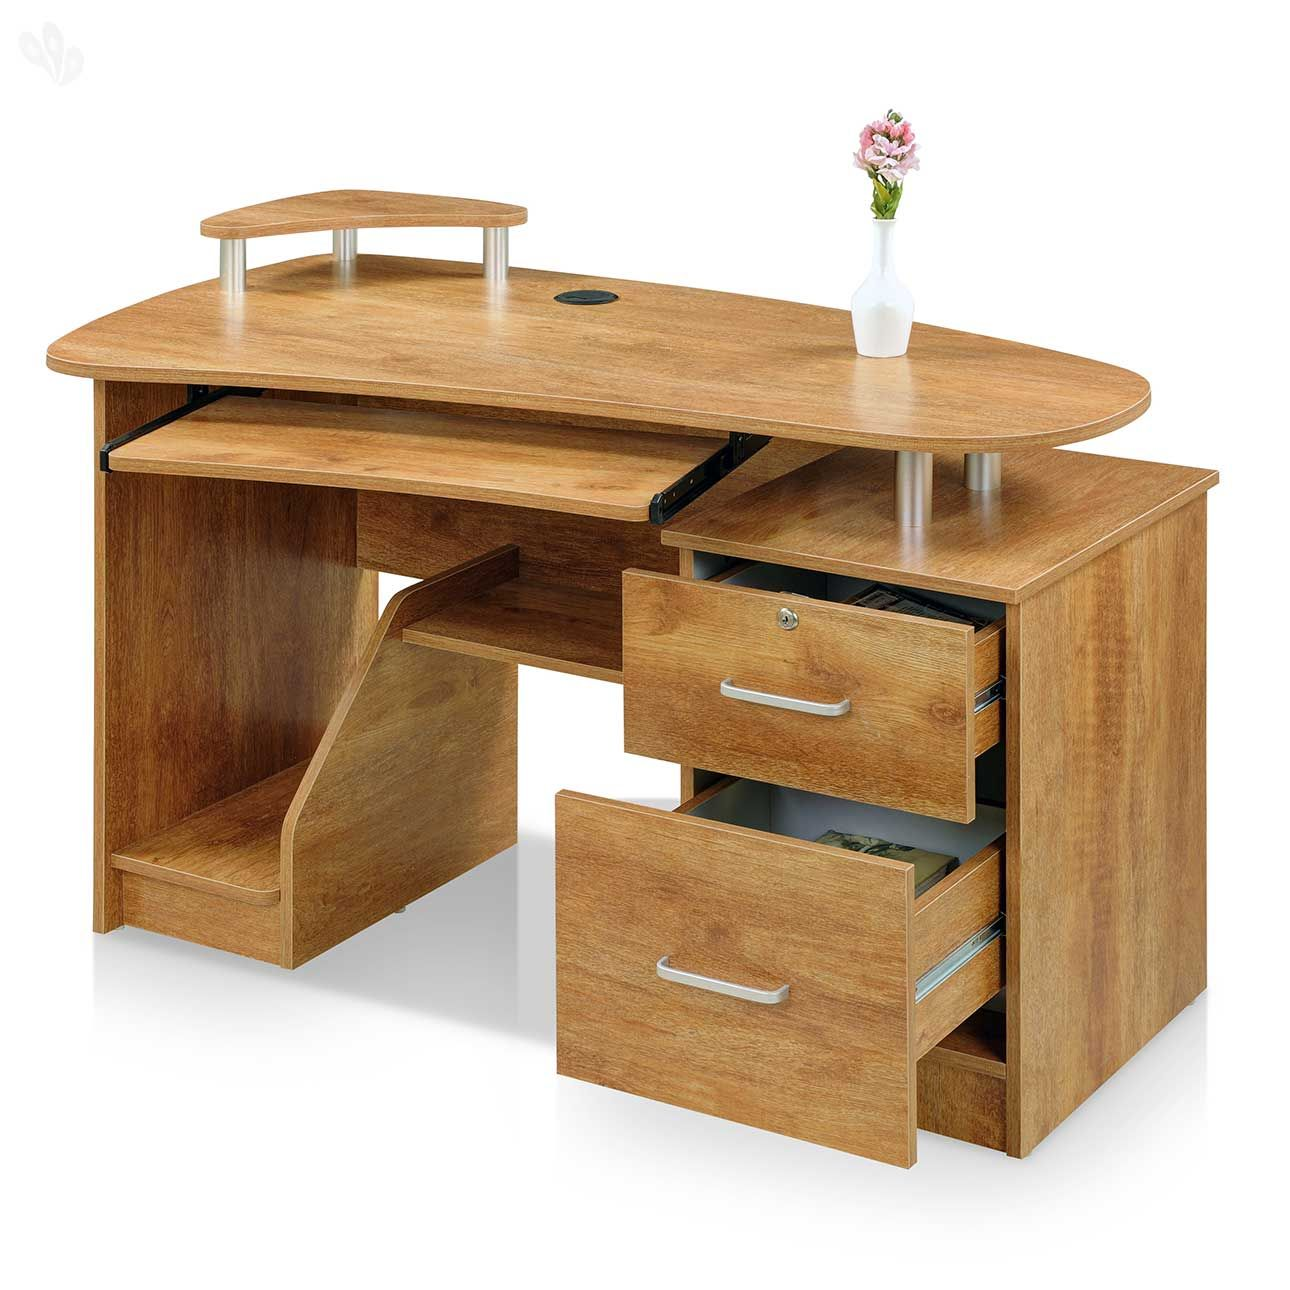 Buy ACACIA COMPUTER TABLE online from India s most affordable furniture  brand RoyalOak. Buy ACACIA COMPUTER TABLE online from India s most affordable